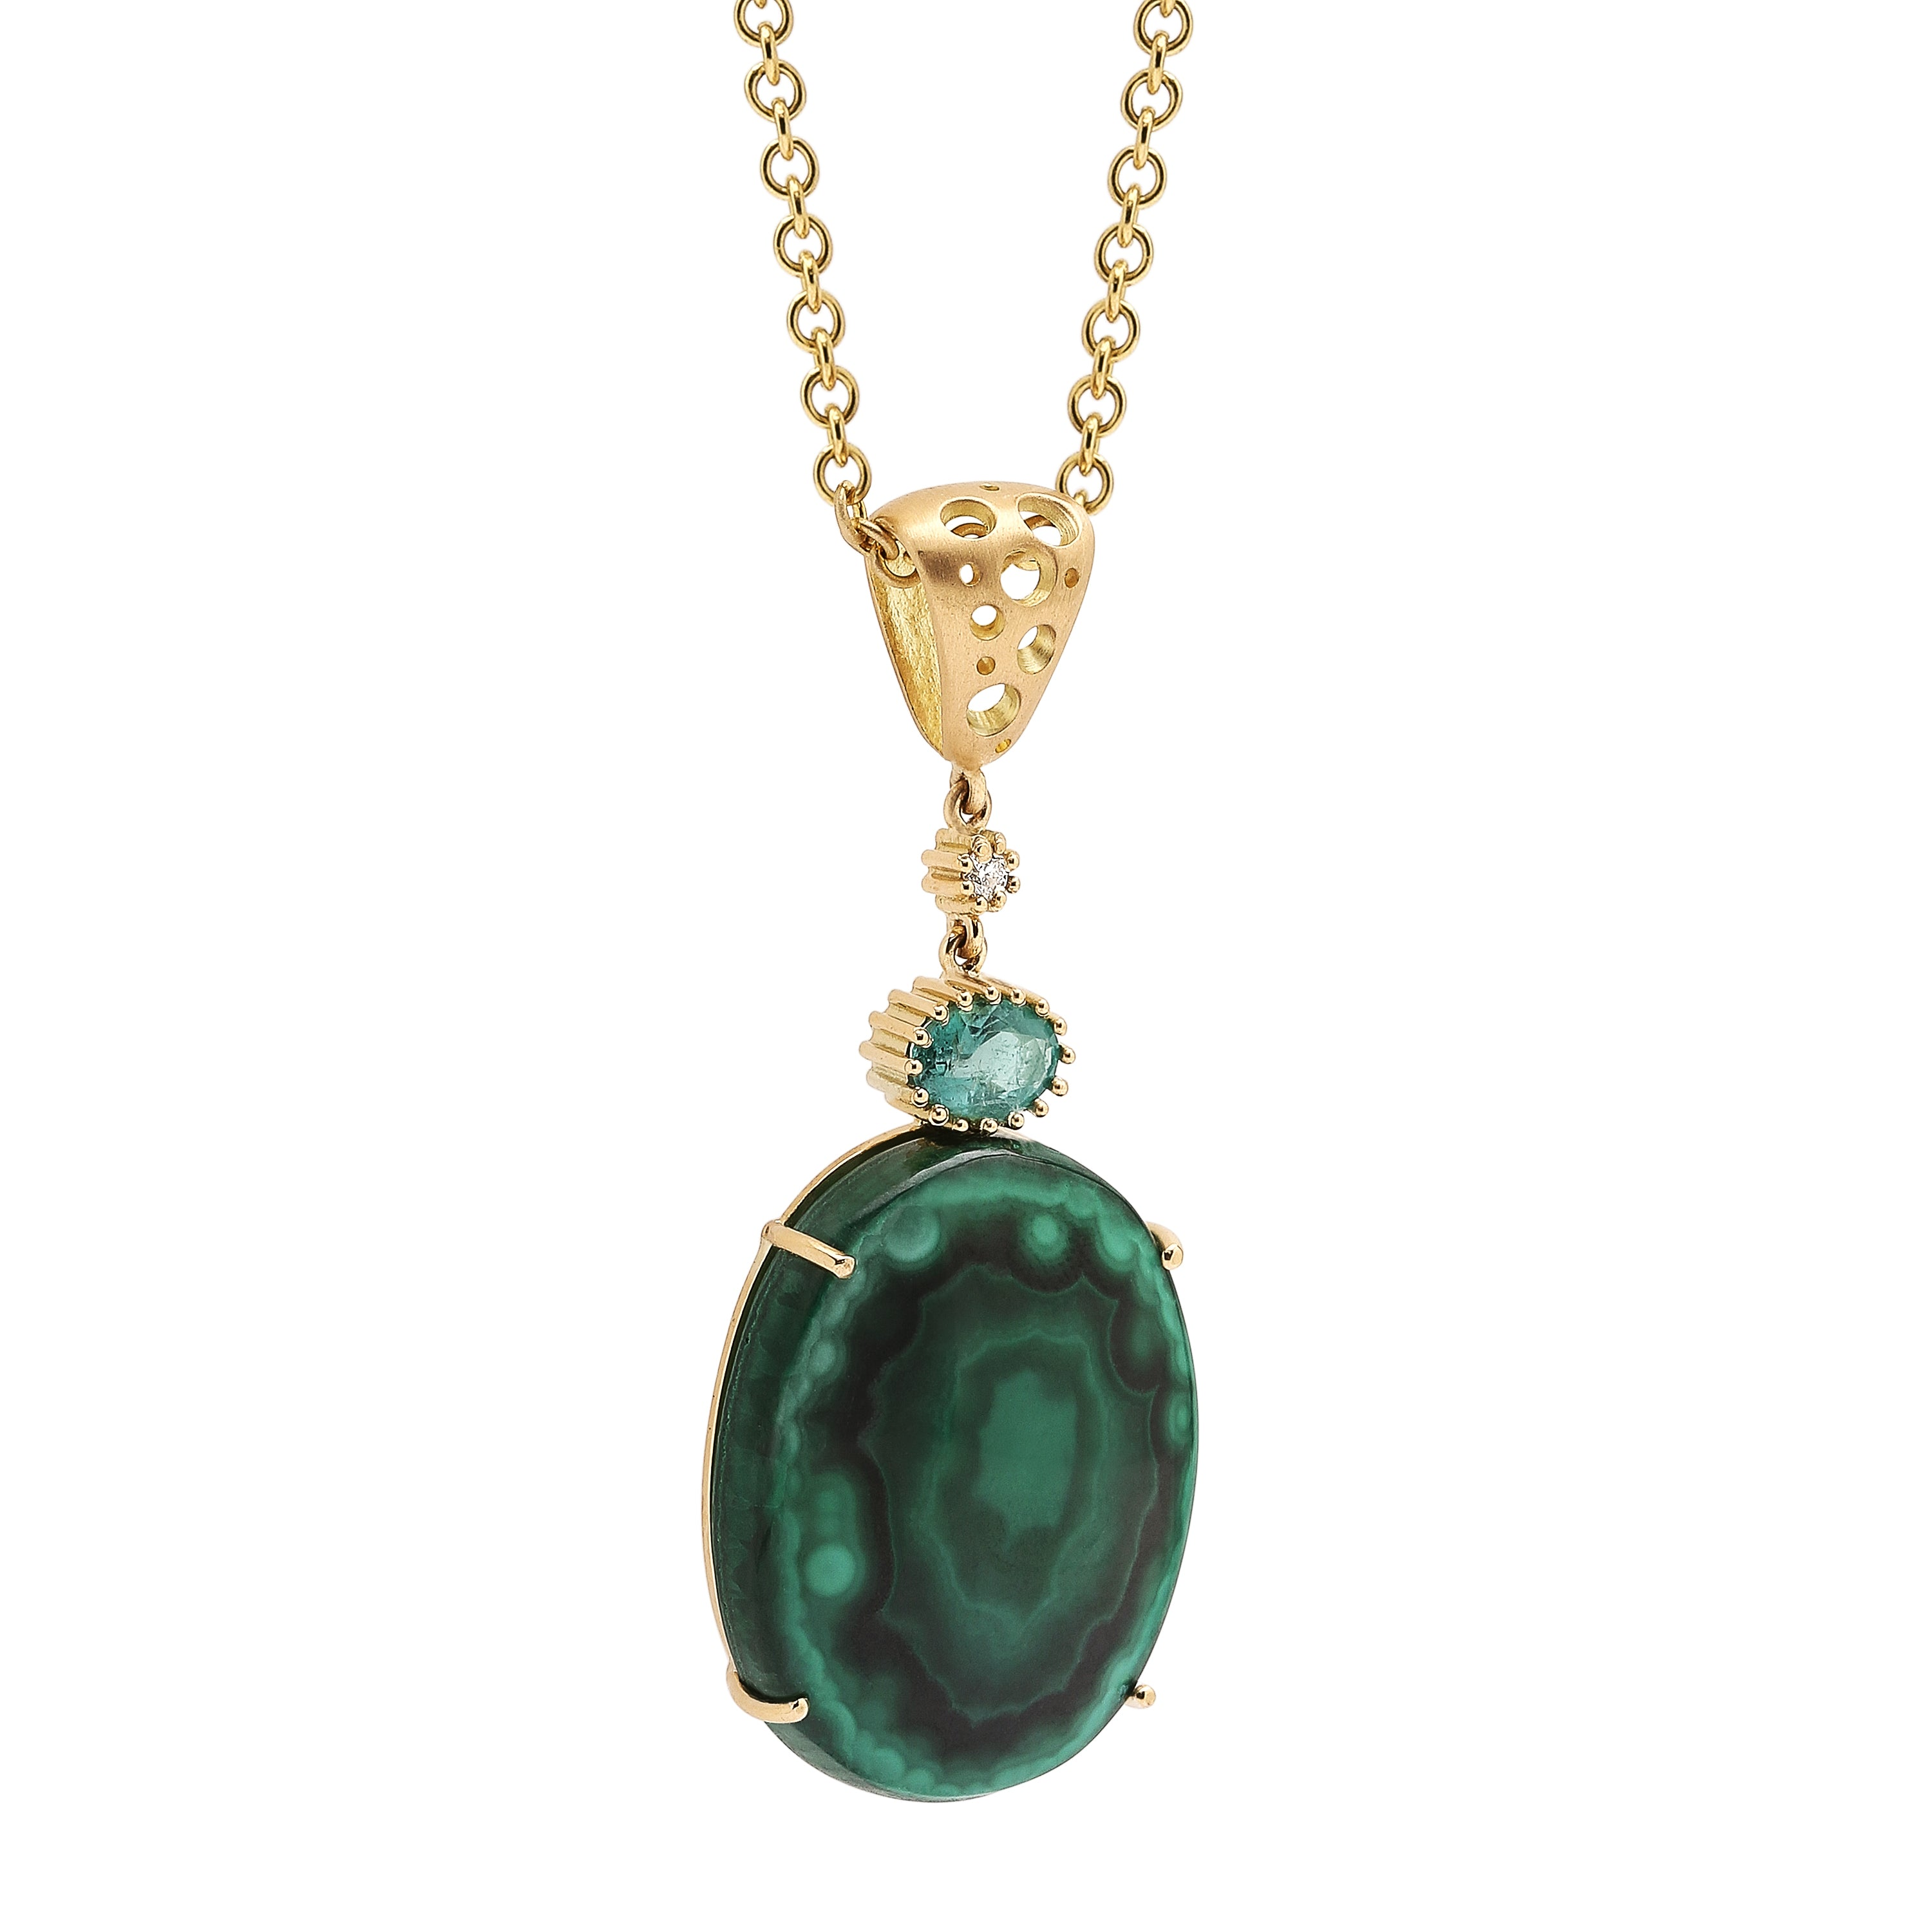 stone fullxfull listing il necklace pendant emerald zoom gold birthstone